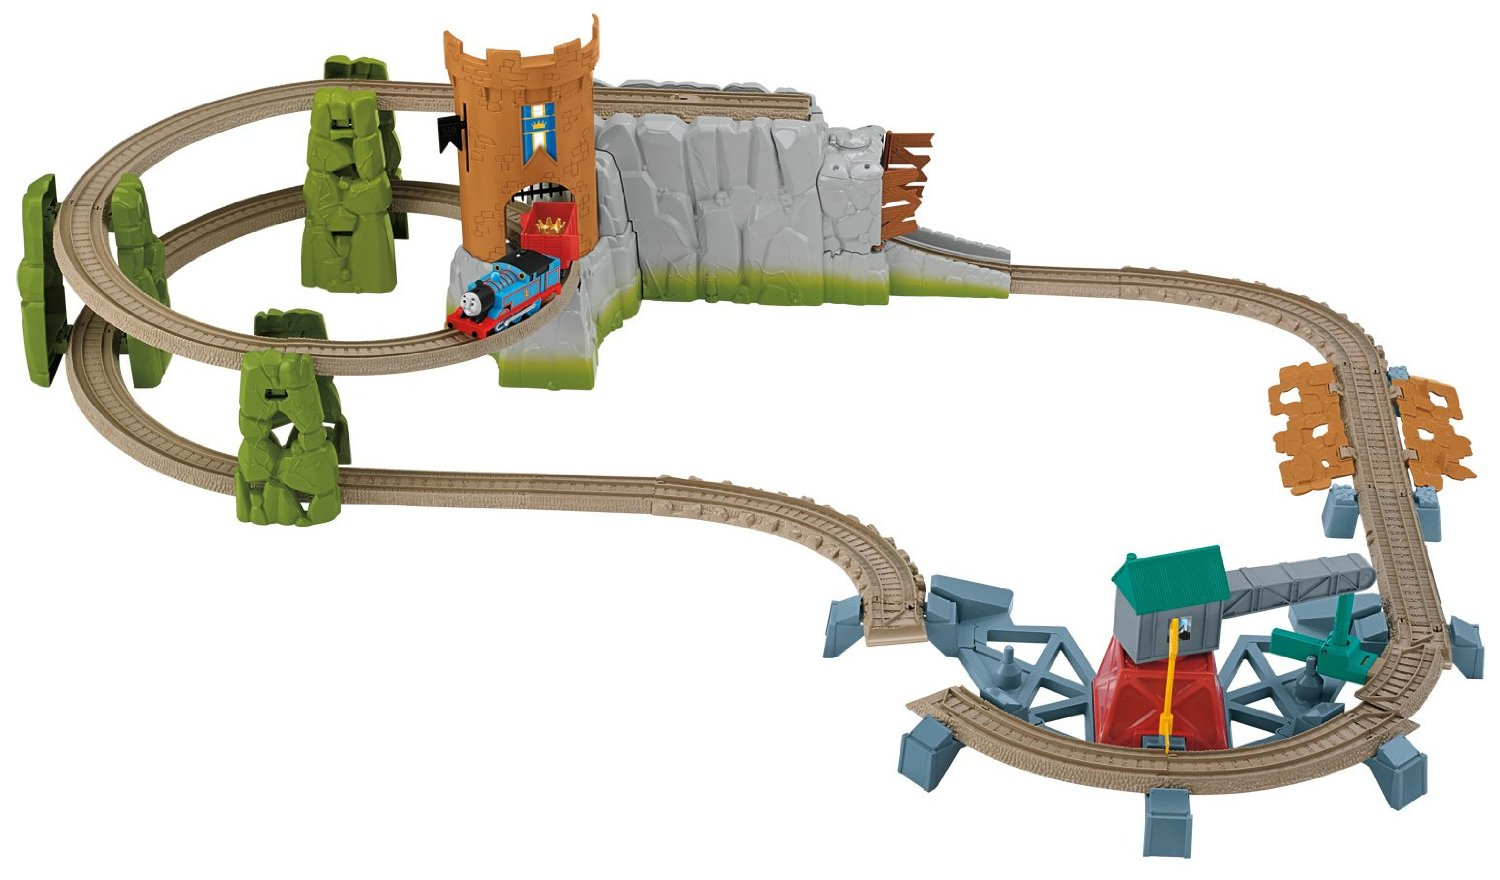 Best Thomas And Friends Toys And Trains : Best train sets for kids what are the options